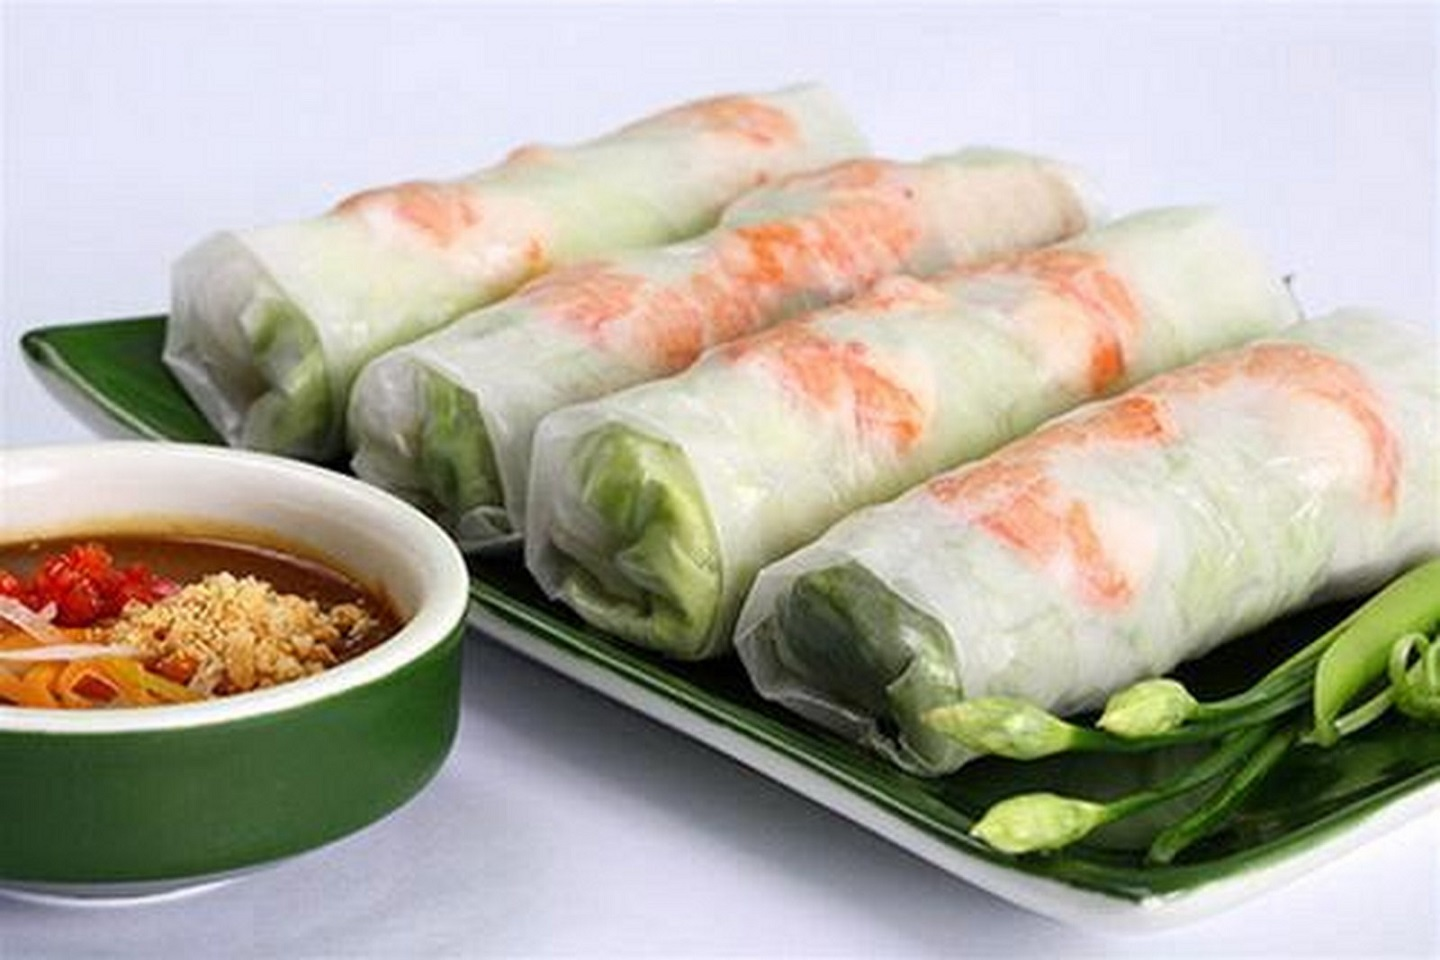 The stunning spring rolls